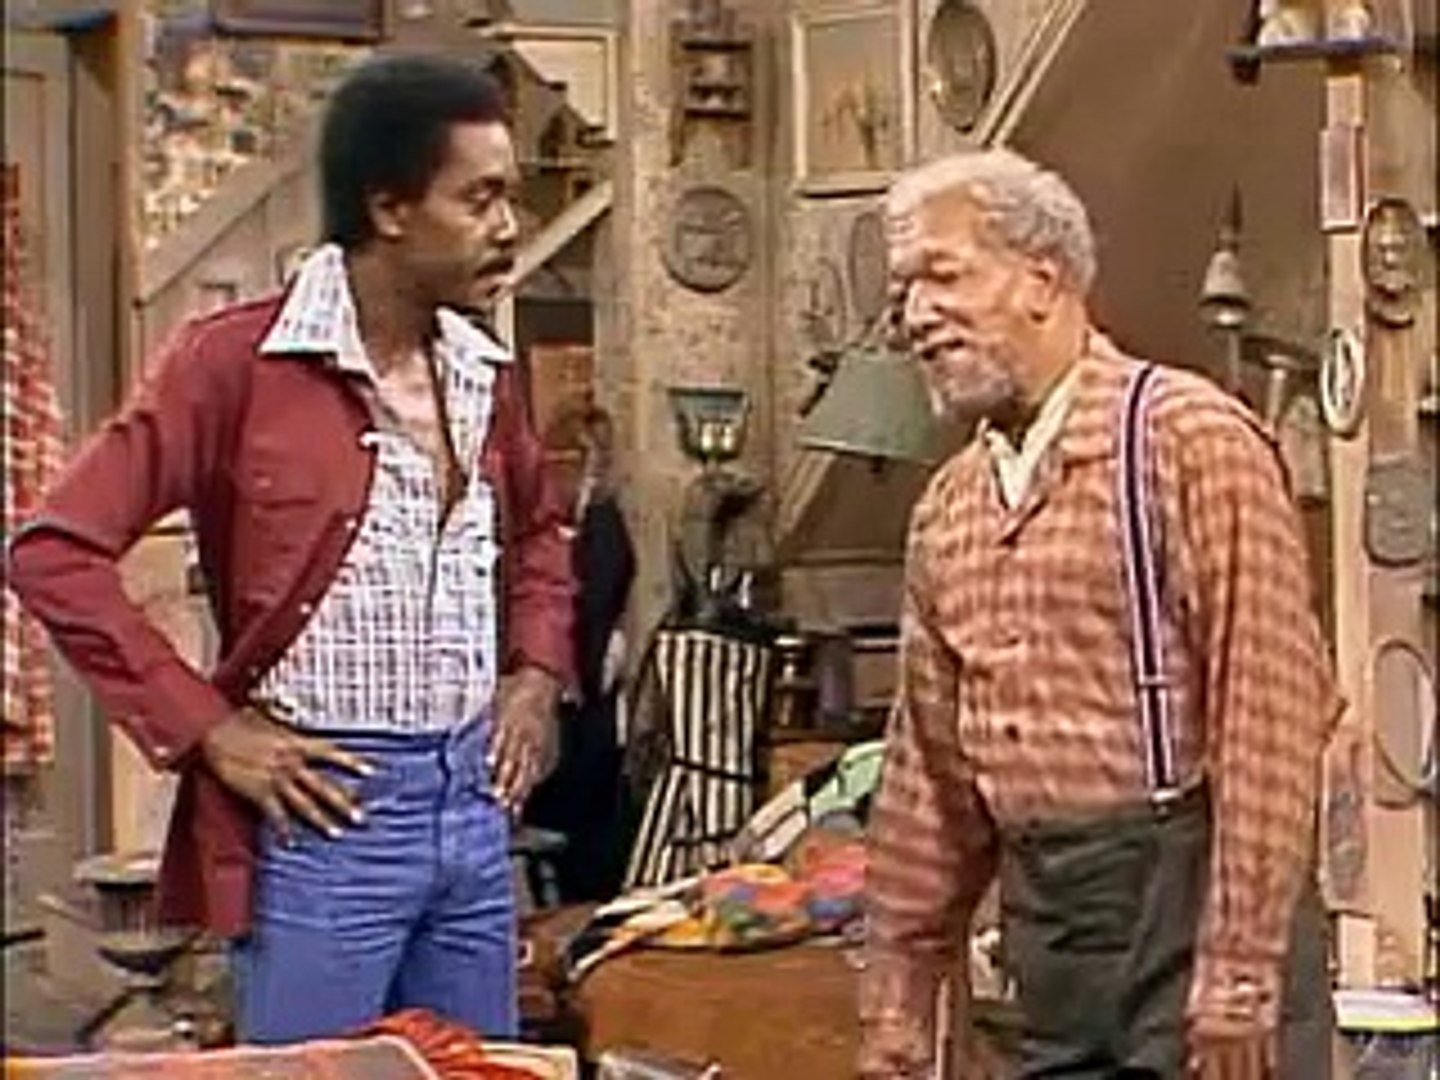 SANFORD AND SON S5E05 Steinberg and Son